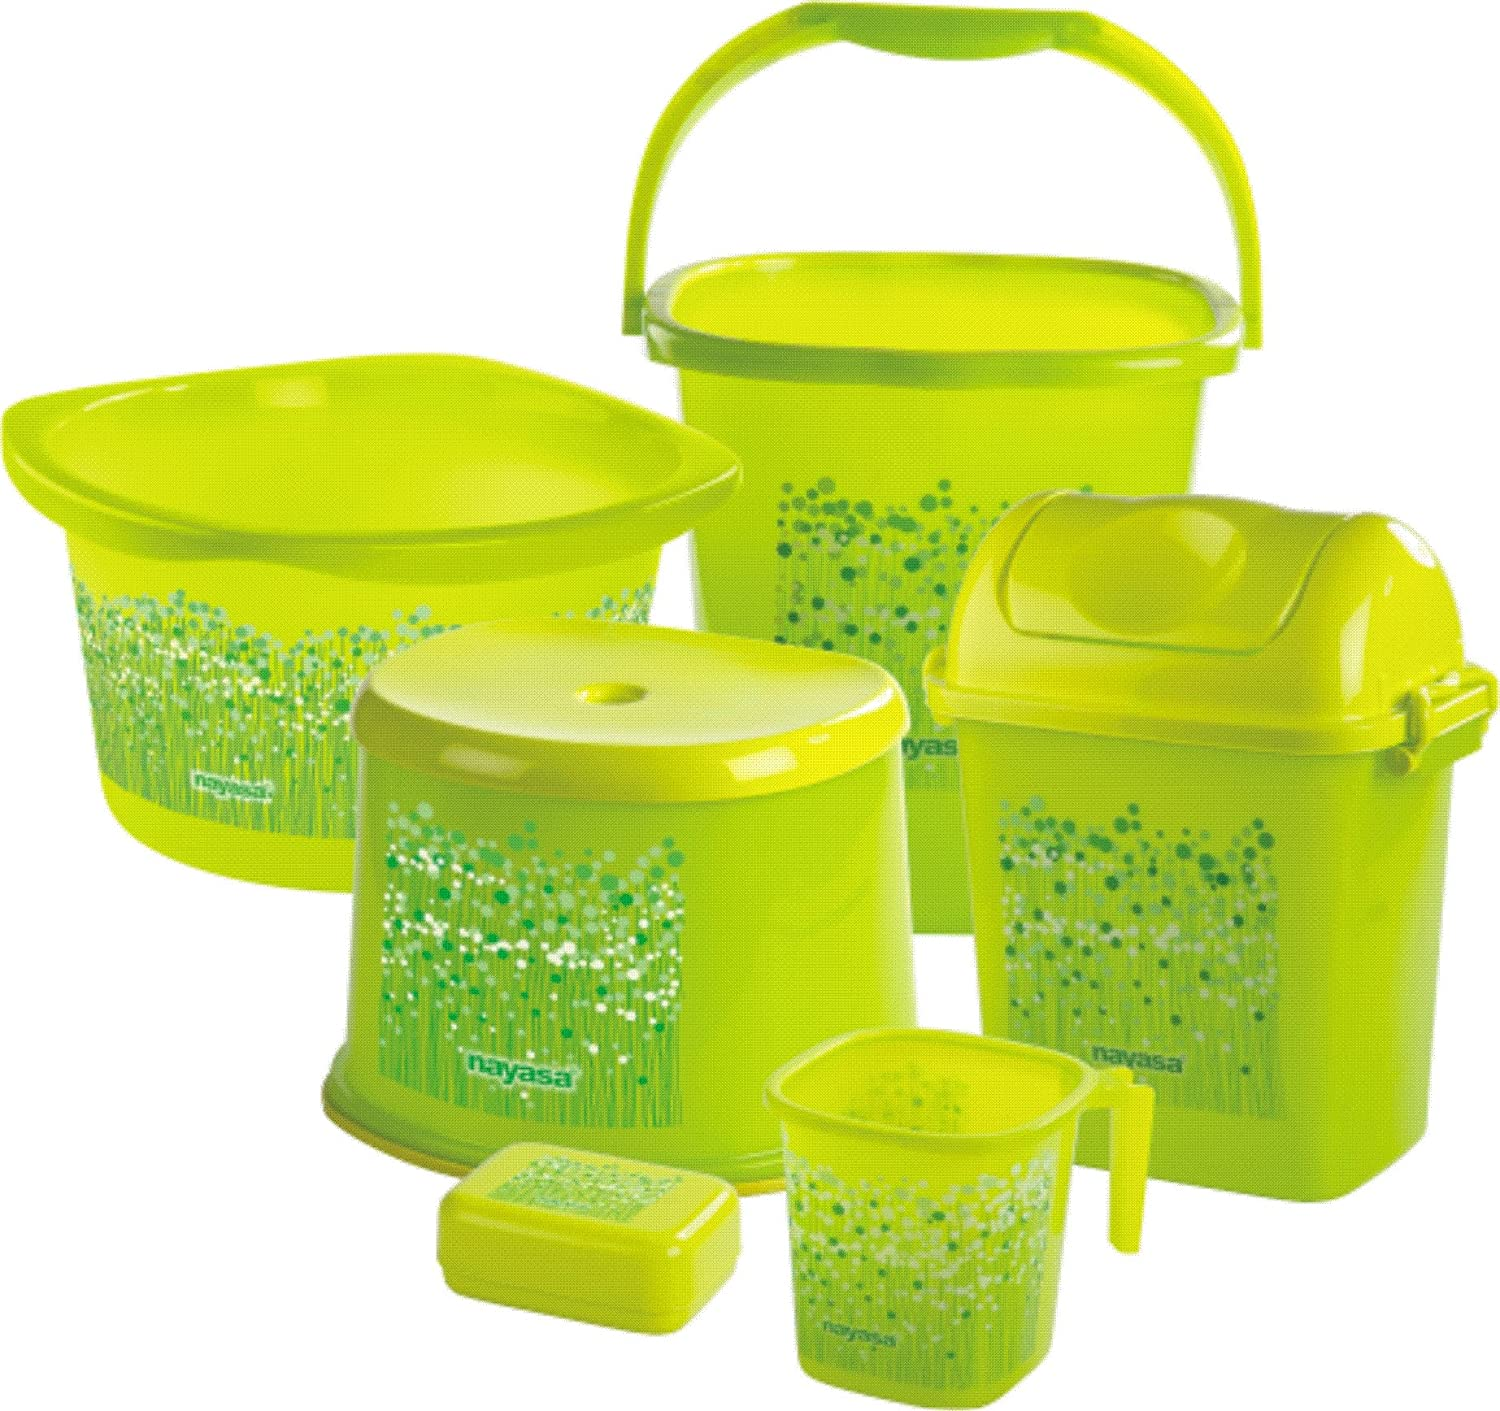 Nayasa Funk Bathroom Set Deluxe, 6 pieces, Green